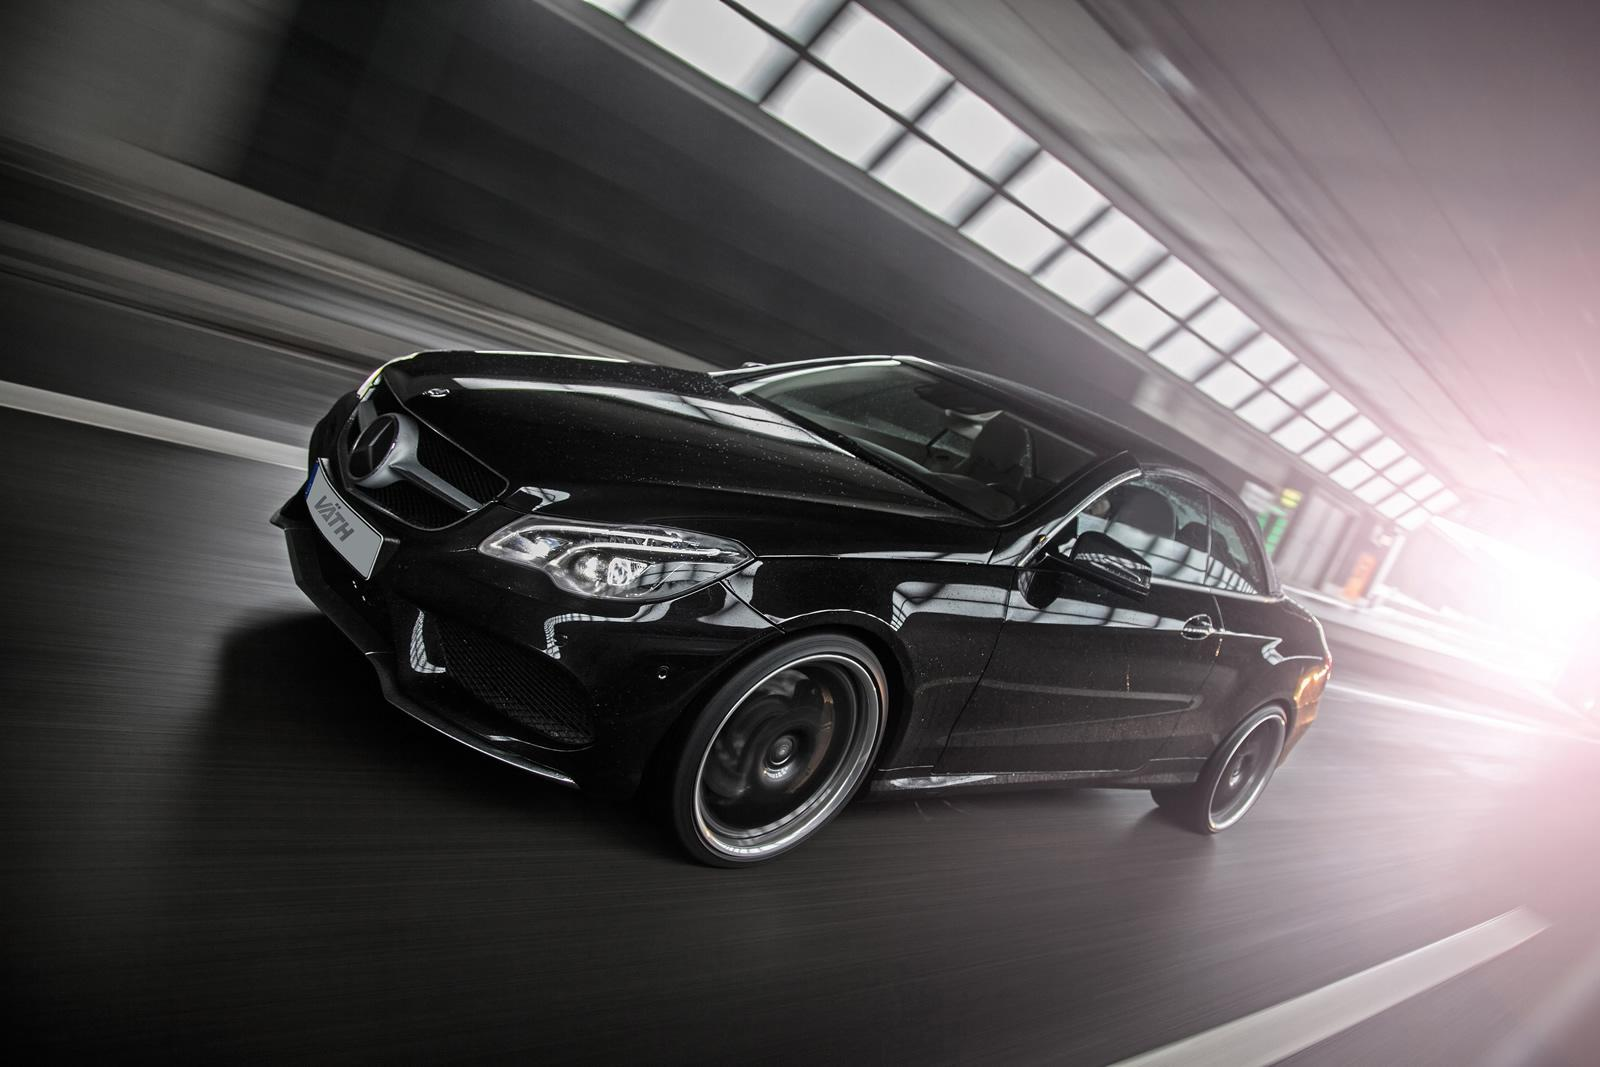 Mercedes benz e500 cabriolet receives 550 hp from vath for 500 hp mercedes benz